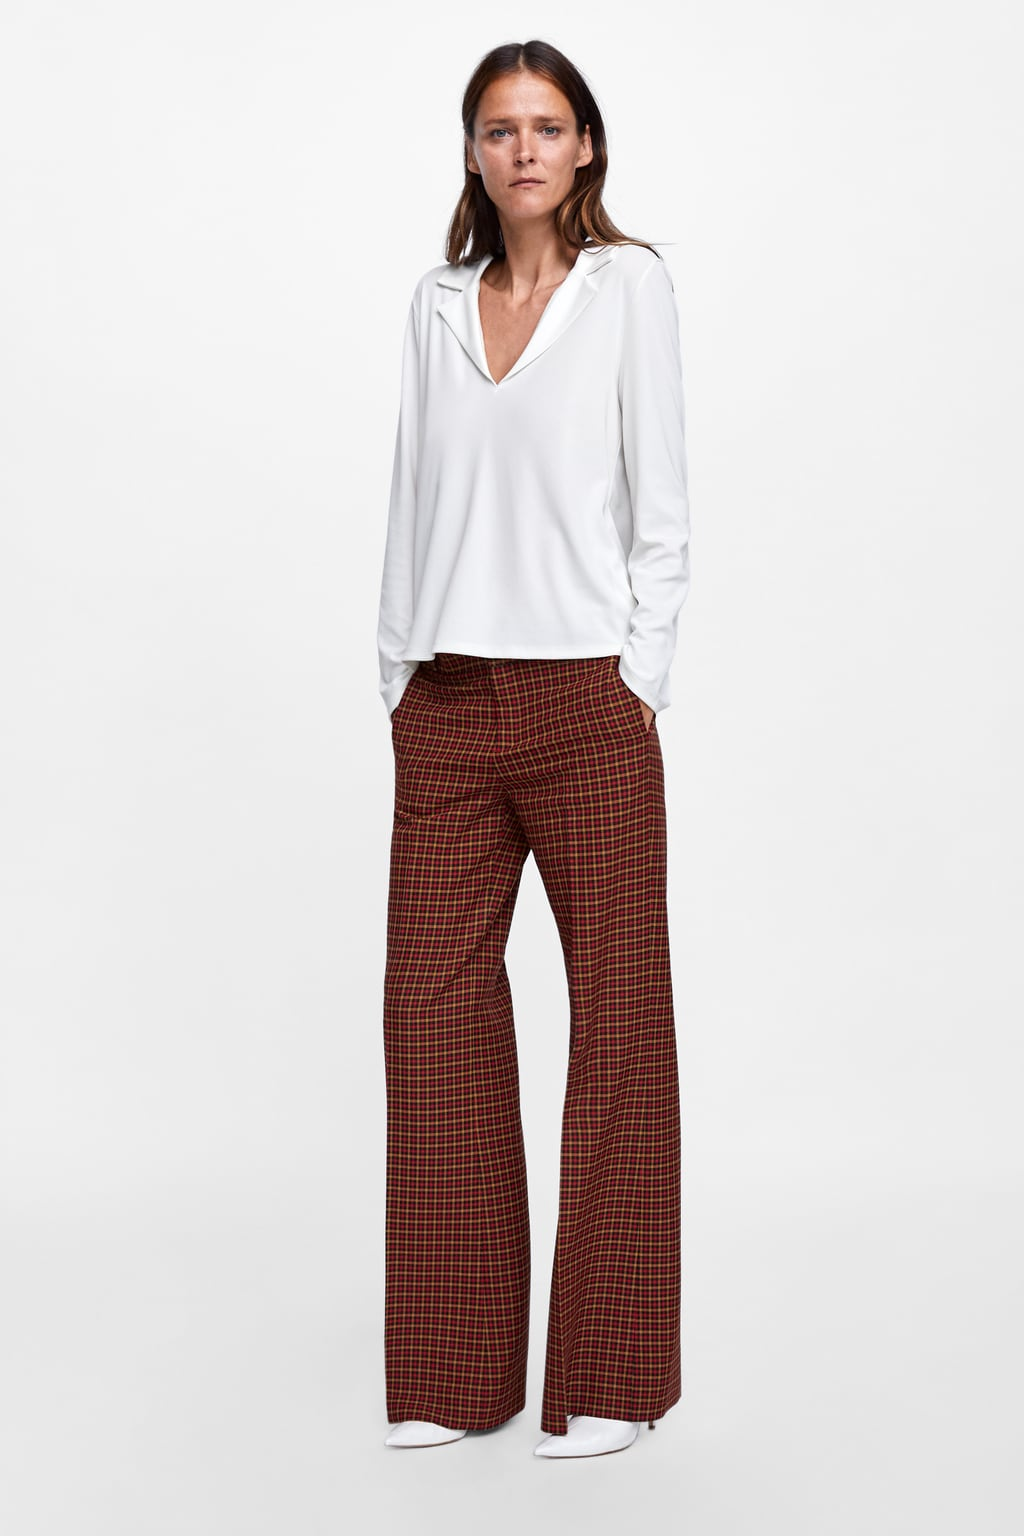 Zara blouse indonesia 21th blouse wearing photo photo source blouse with lapel collar view all t shirts woman zara indonesia stopboris Images